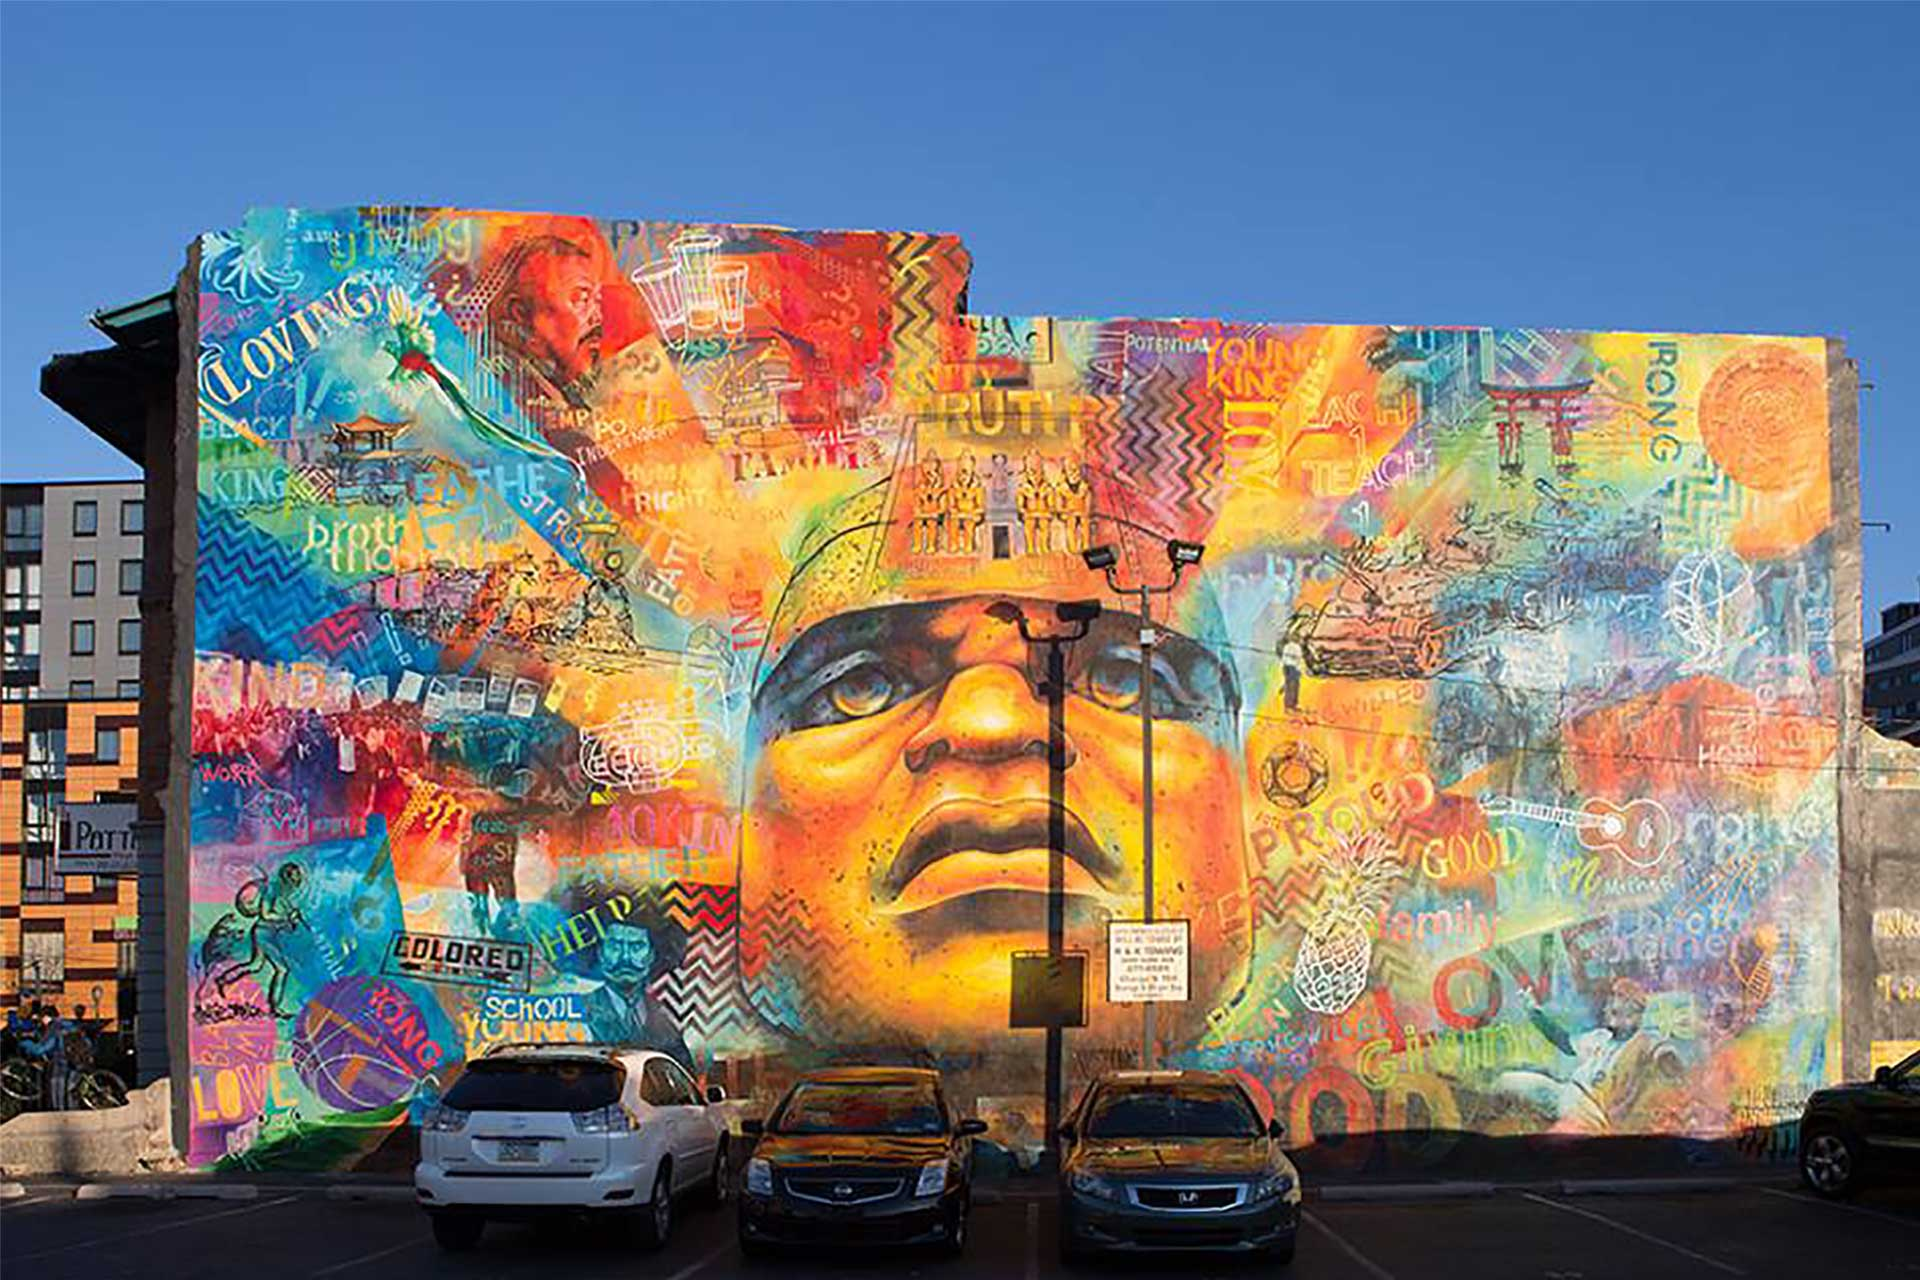 A colorful mural on the side of a parking lot.